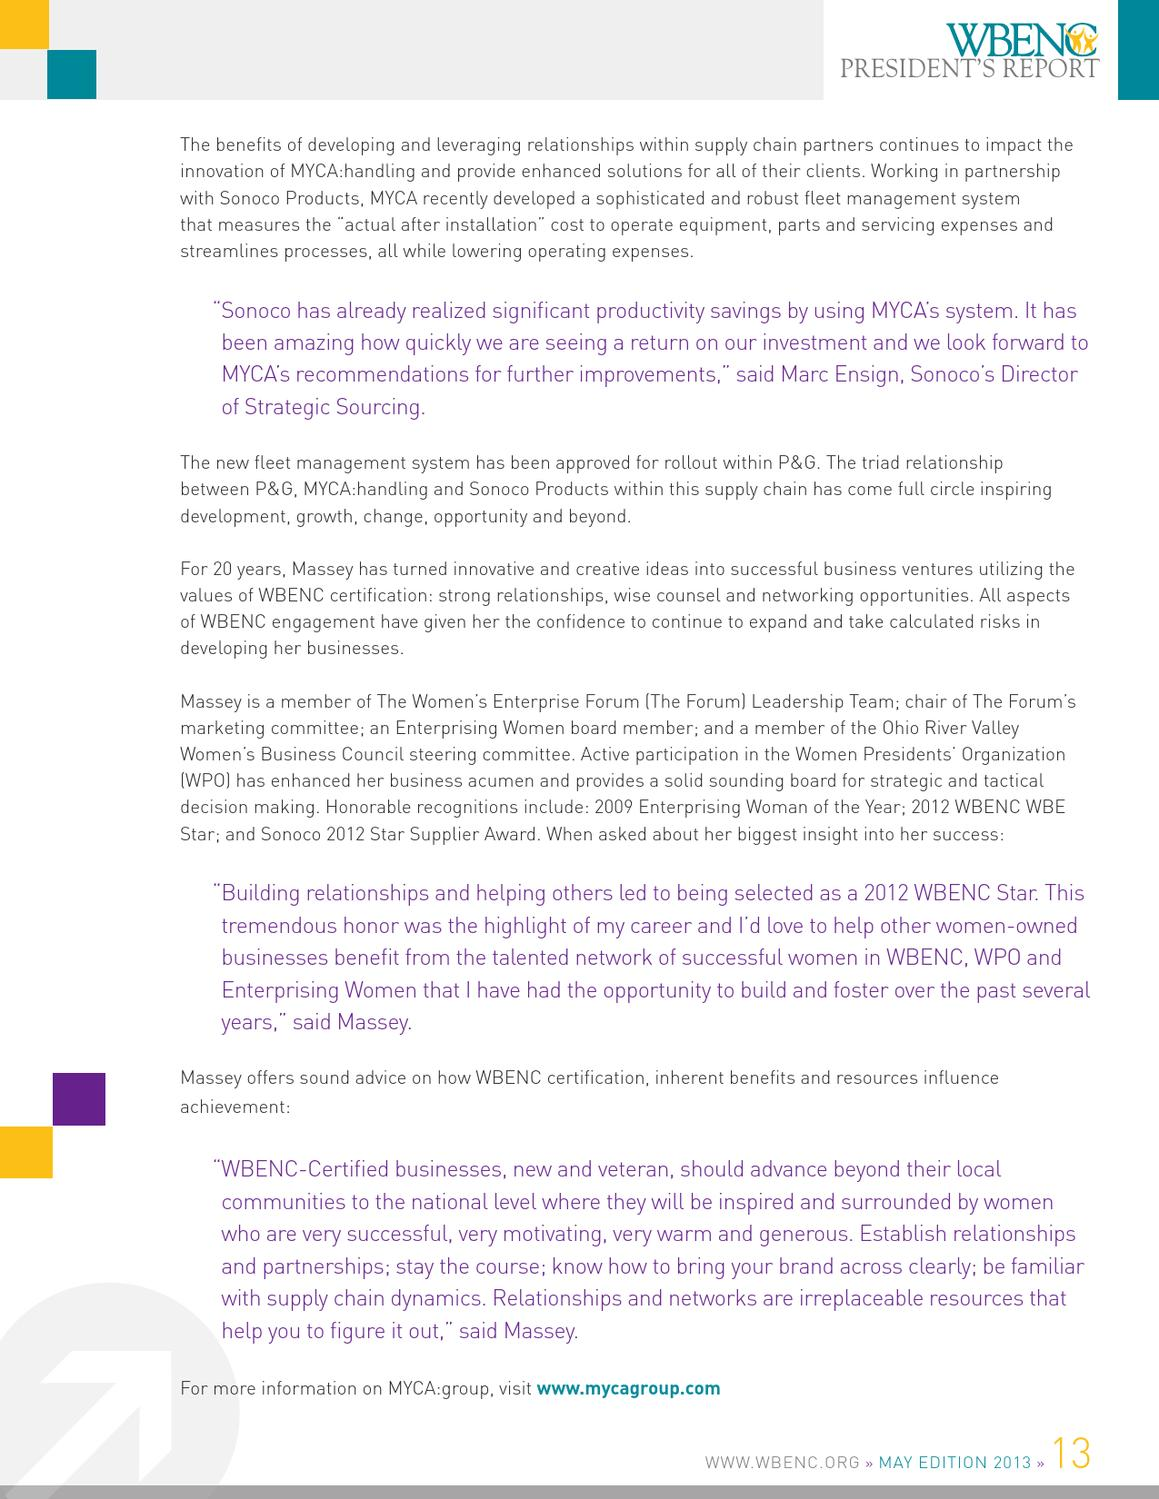 WBENC May 2013 President's Report by WBENC - issuu